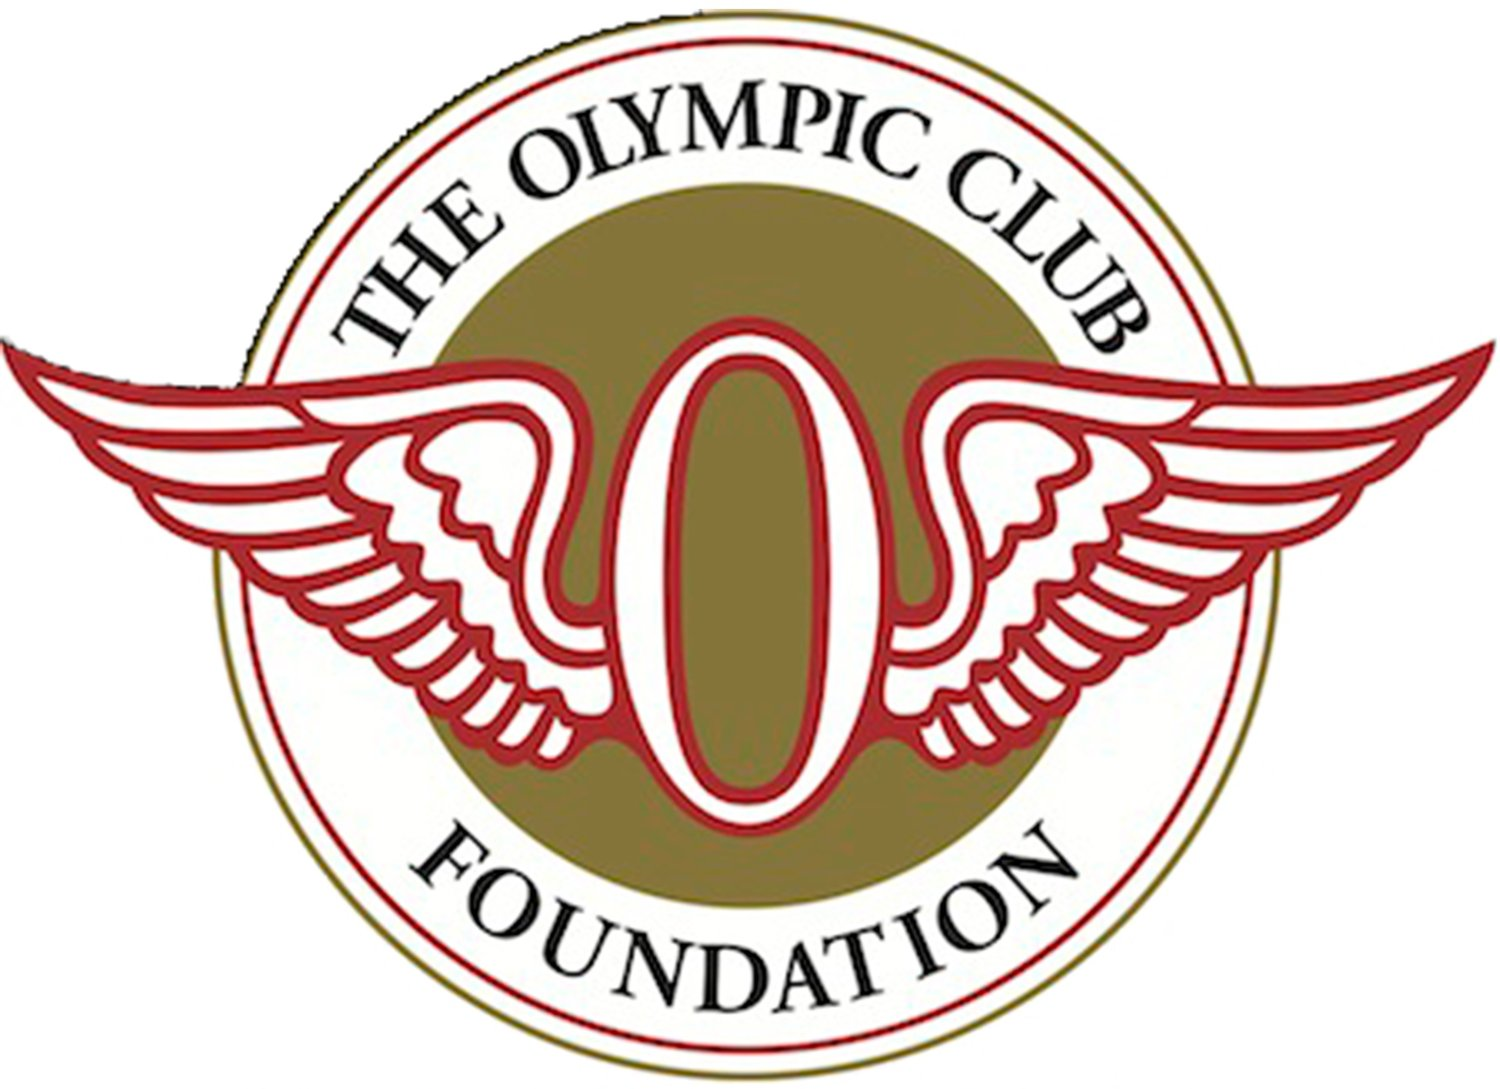 The Olympic Club Foundation